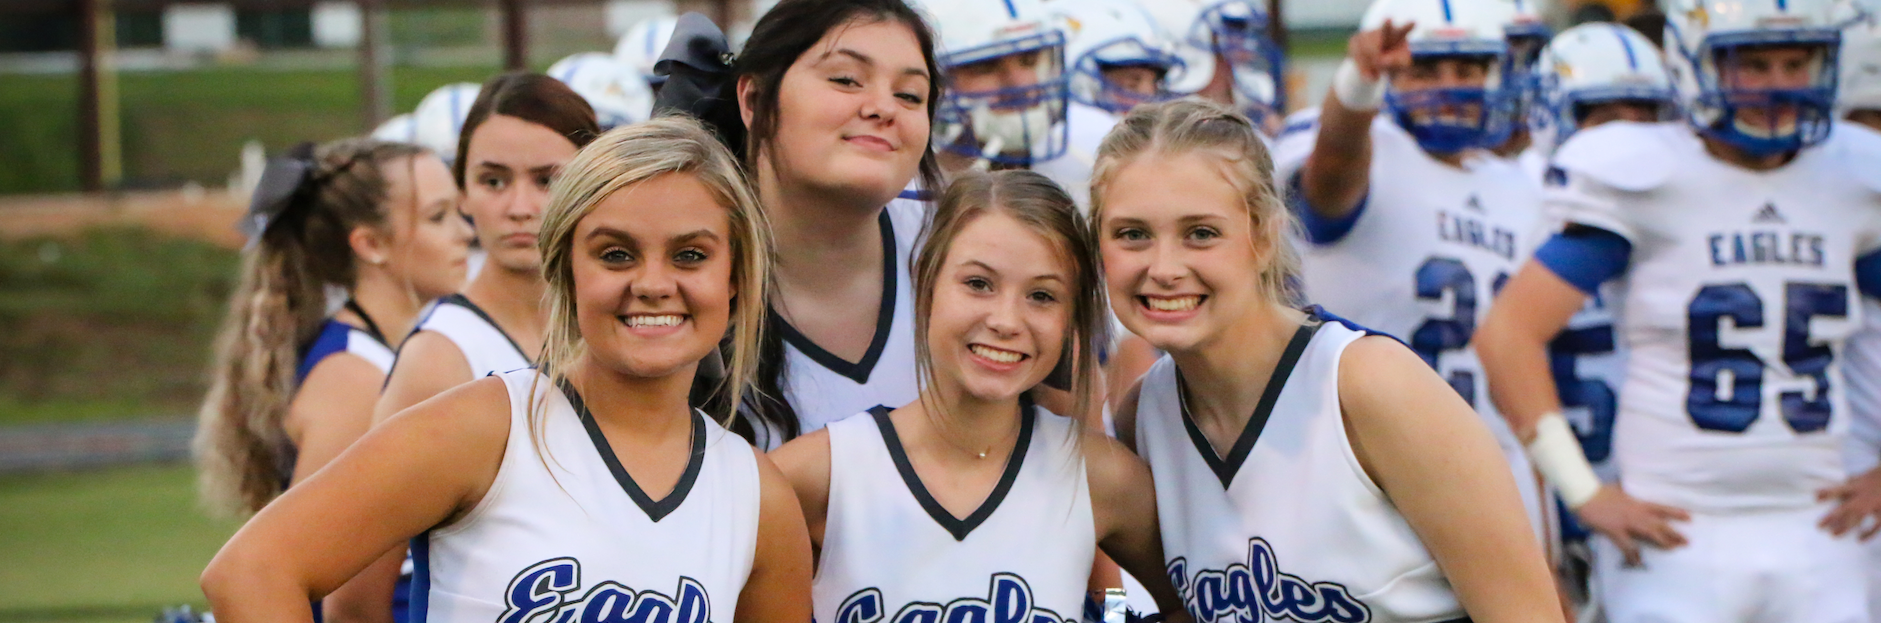 Cheerleaders Posing for Picture